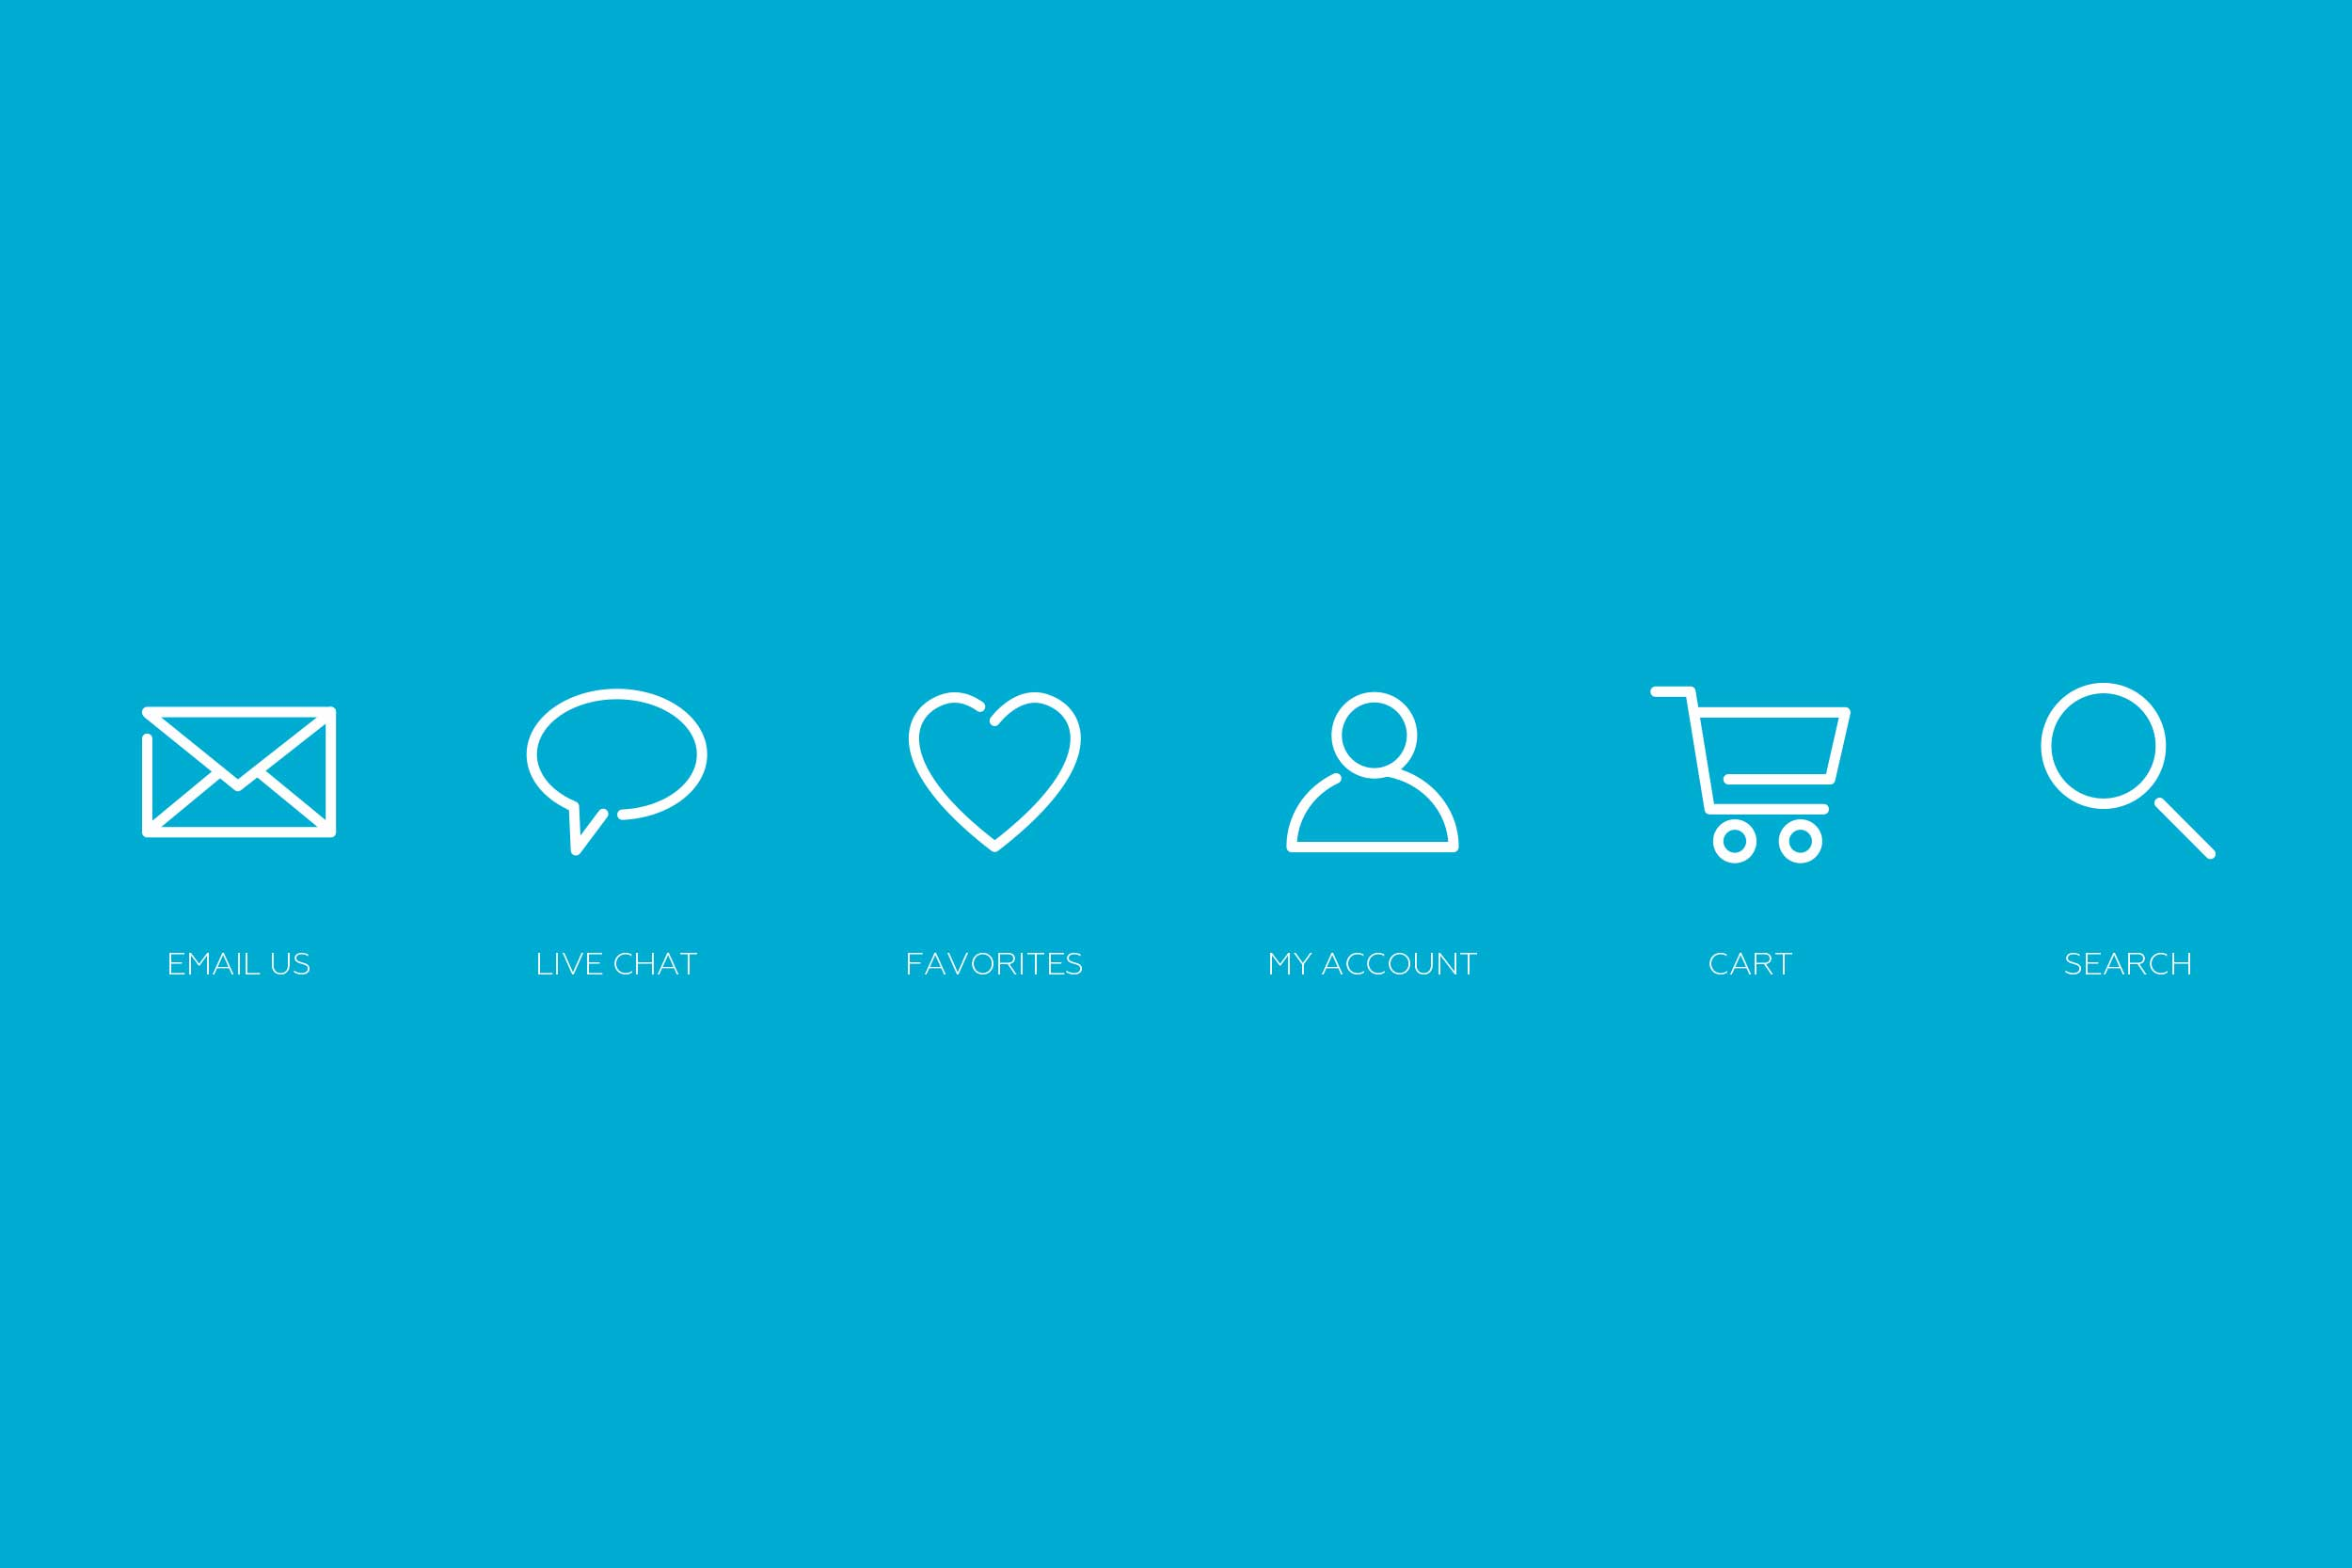 Icons developed that help build the 2Modern brand.